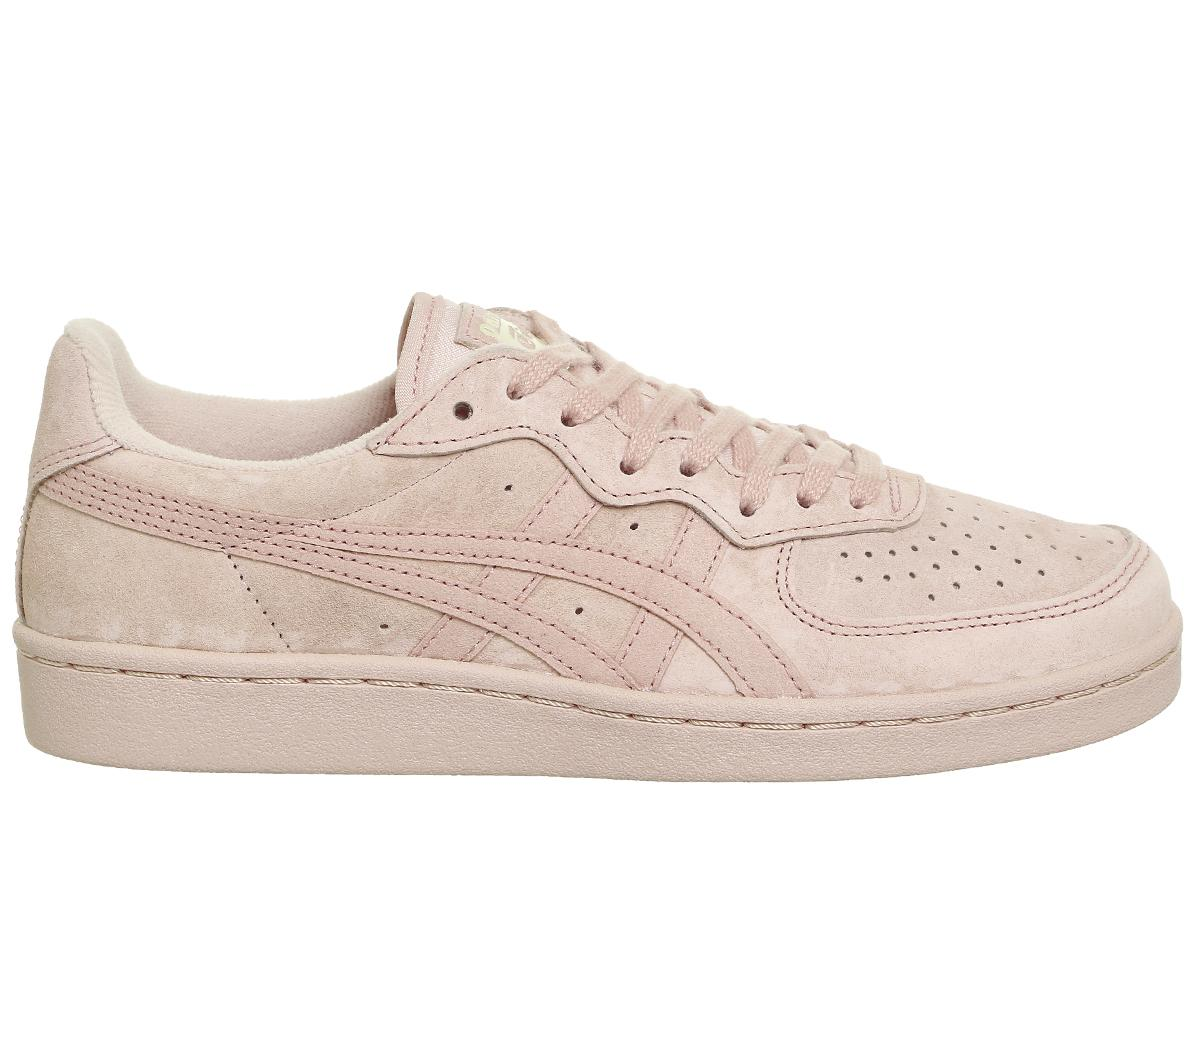 Onitsuka Tiger Suede Gsm Trainers